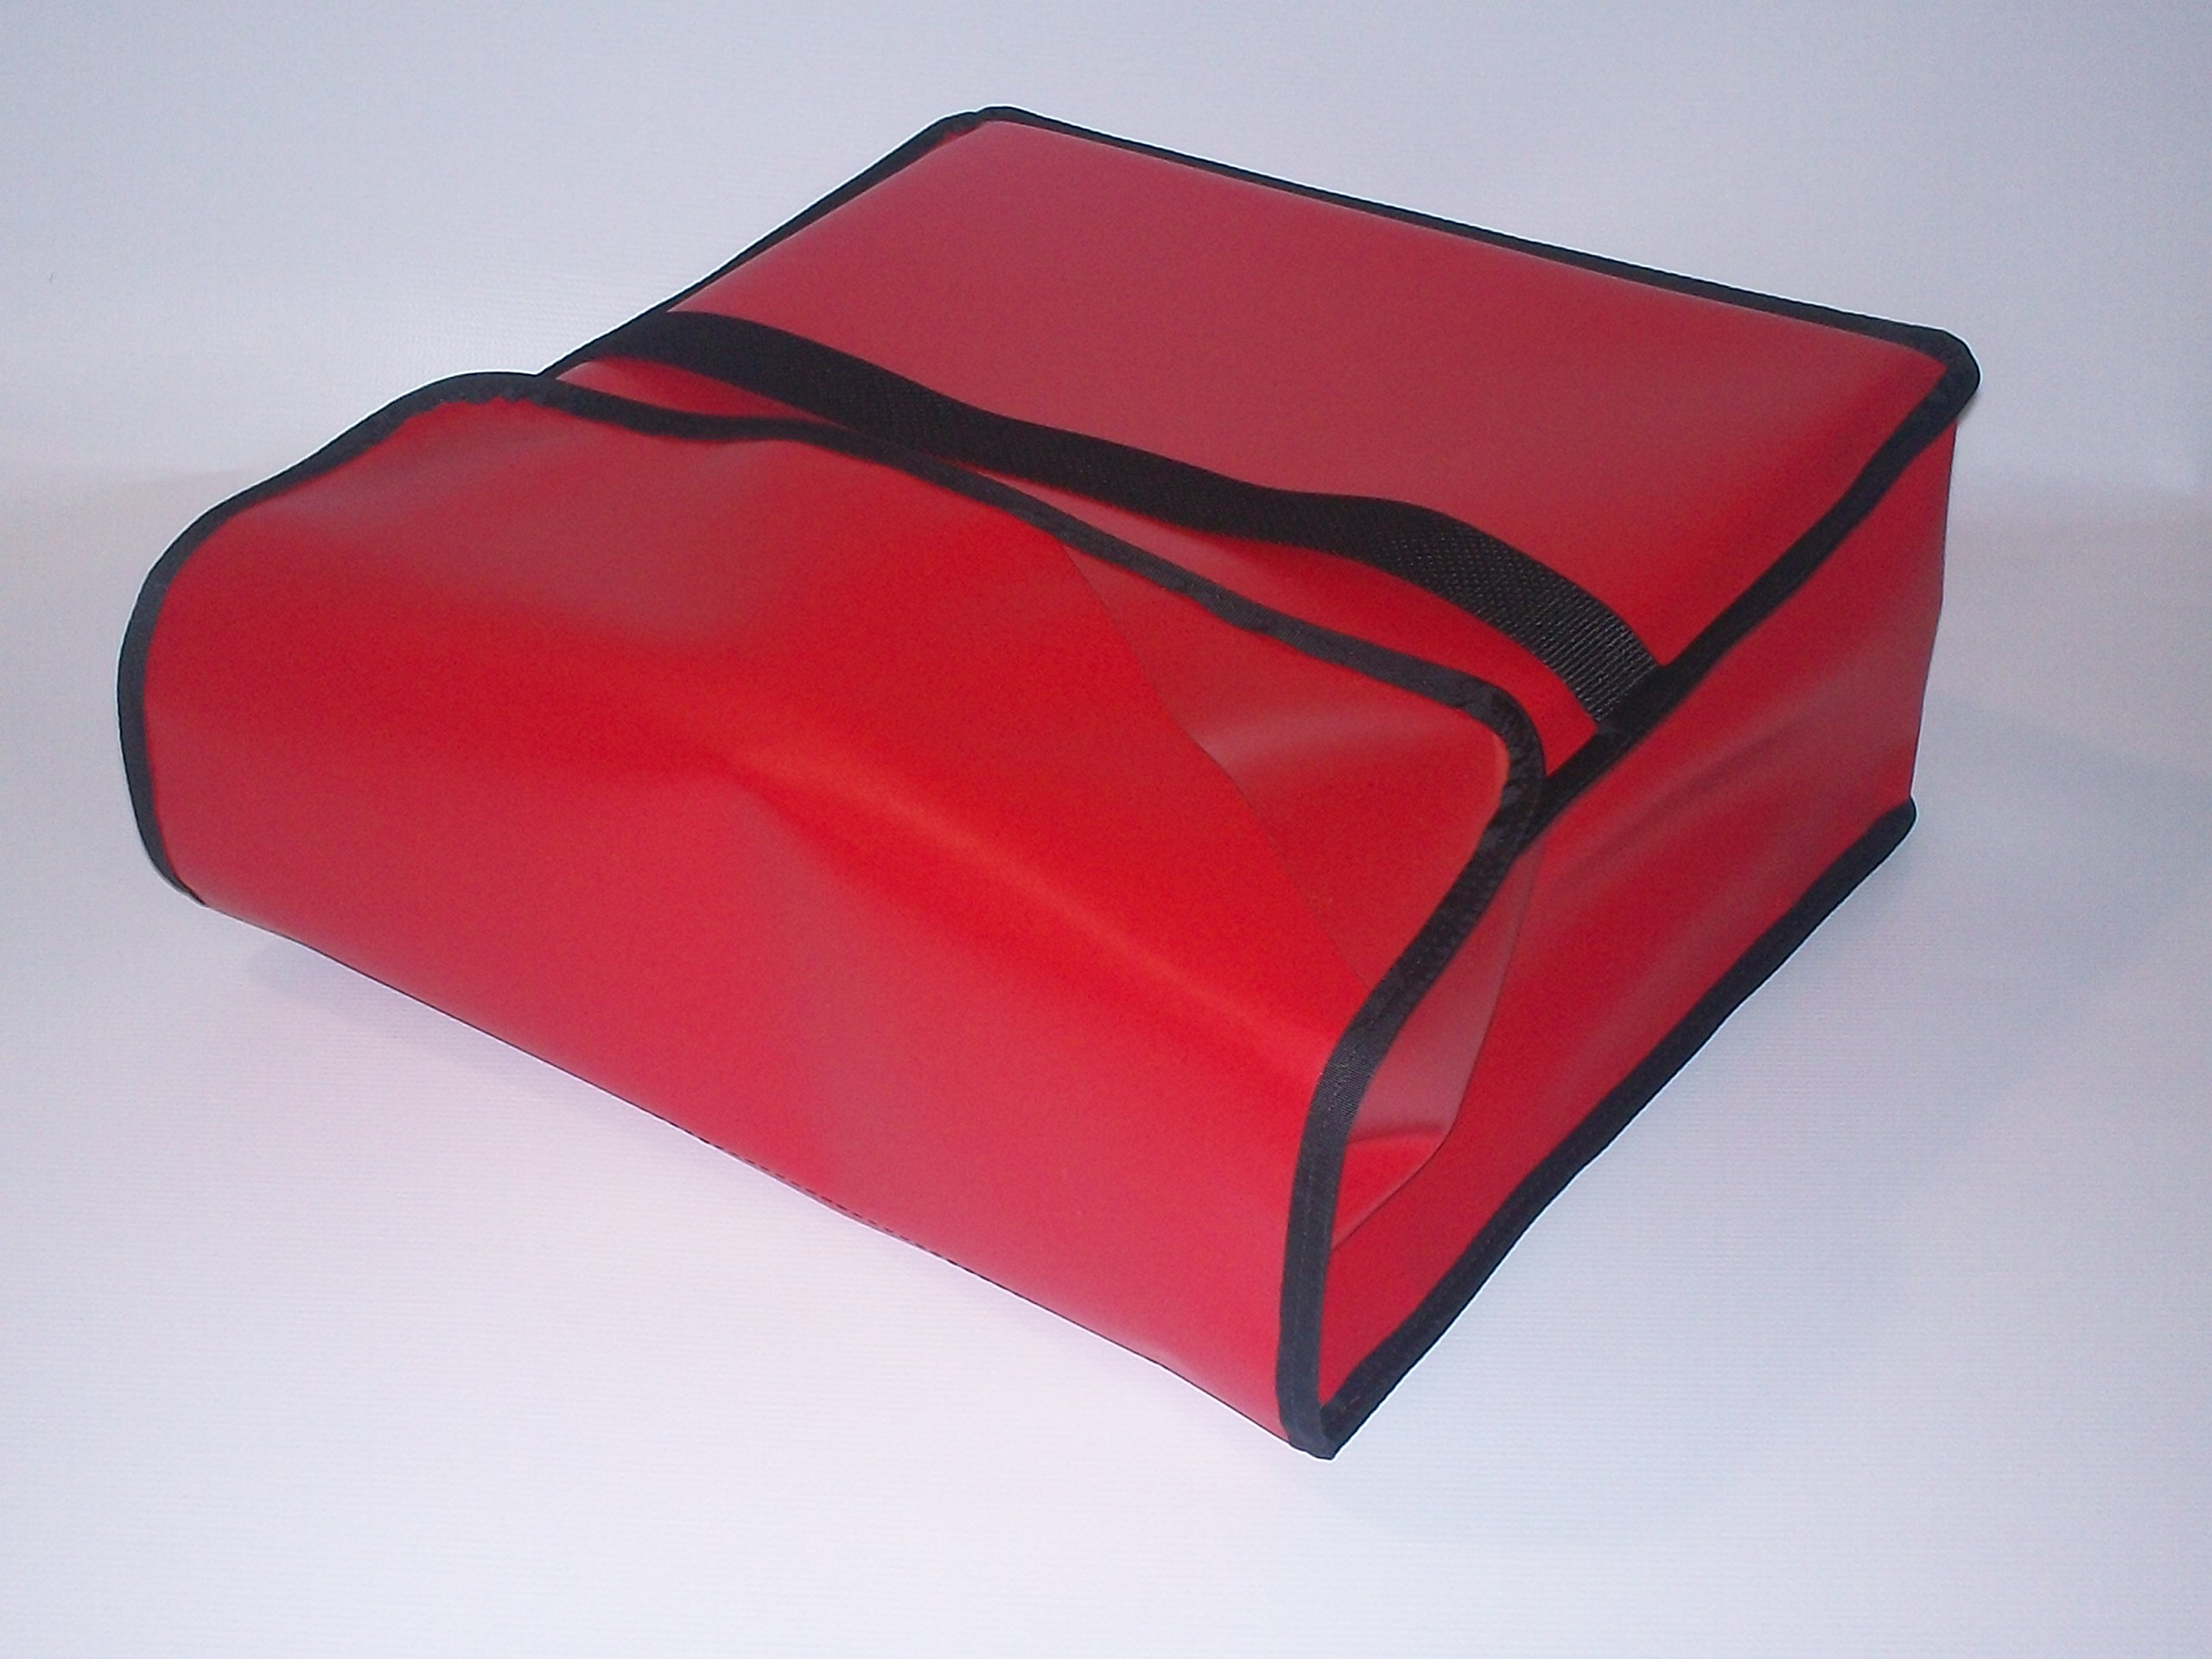 TCB Insulated Bags PK-330-Red Insulated Pizza Delivery Bag, Holds 3 Each 28'' Pizzas, 30'' x 30'' x 7'', Red